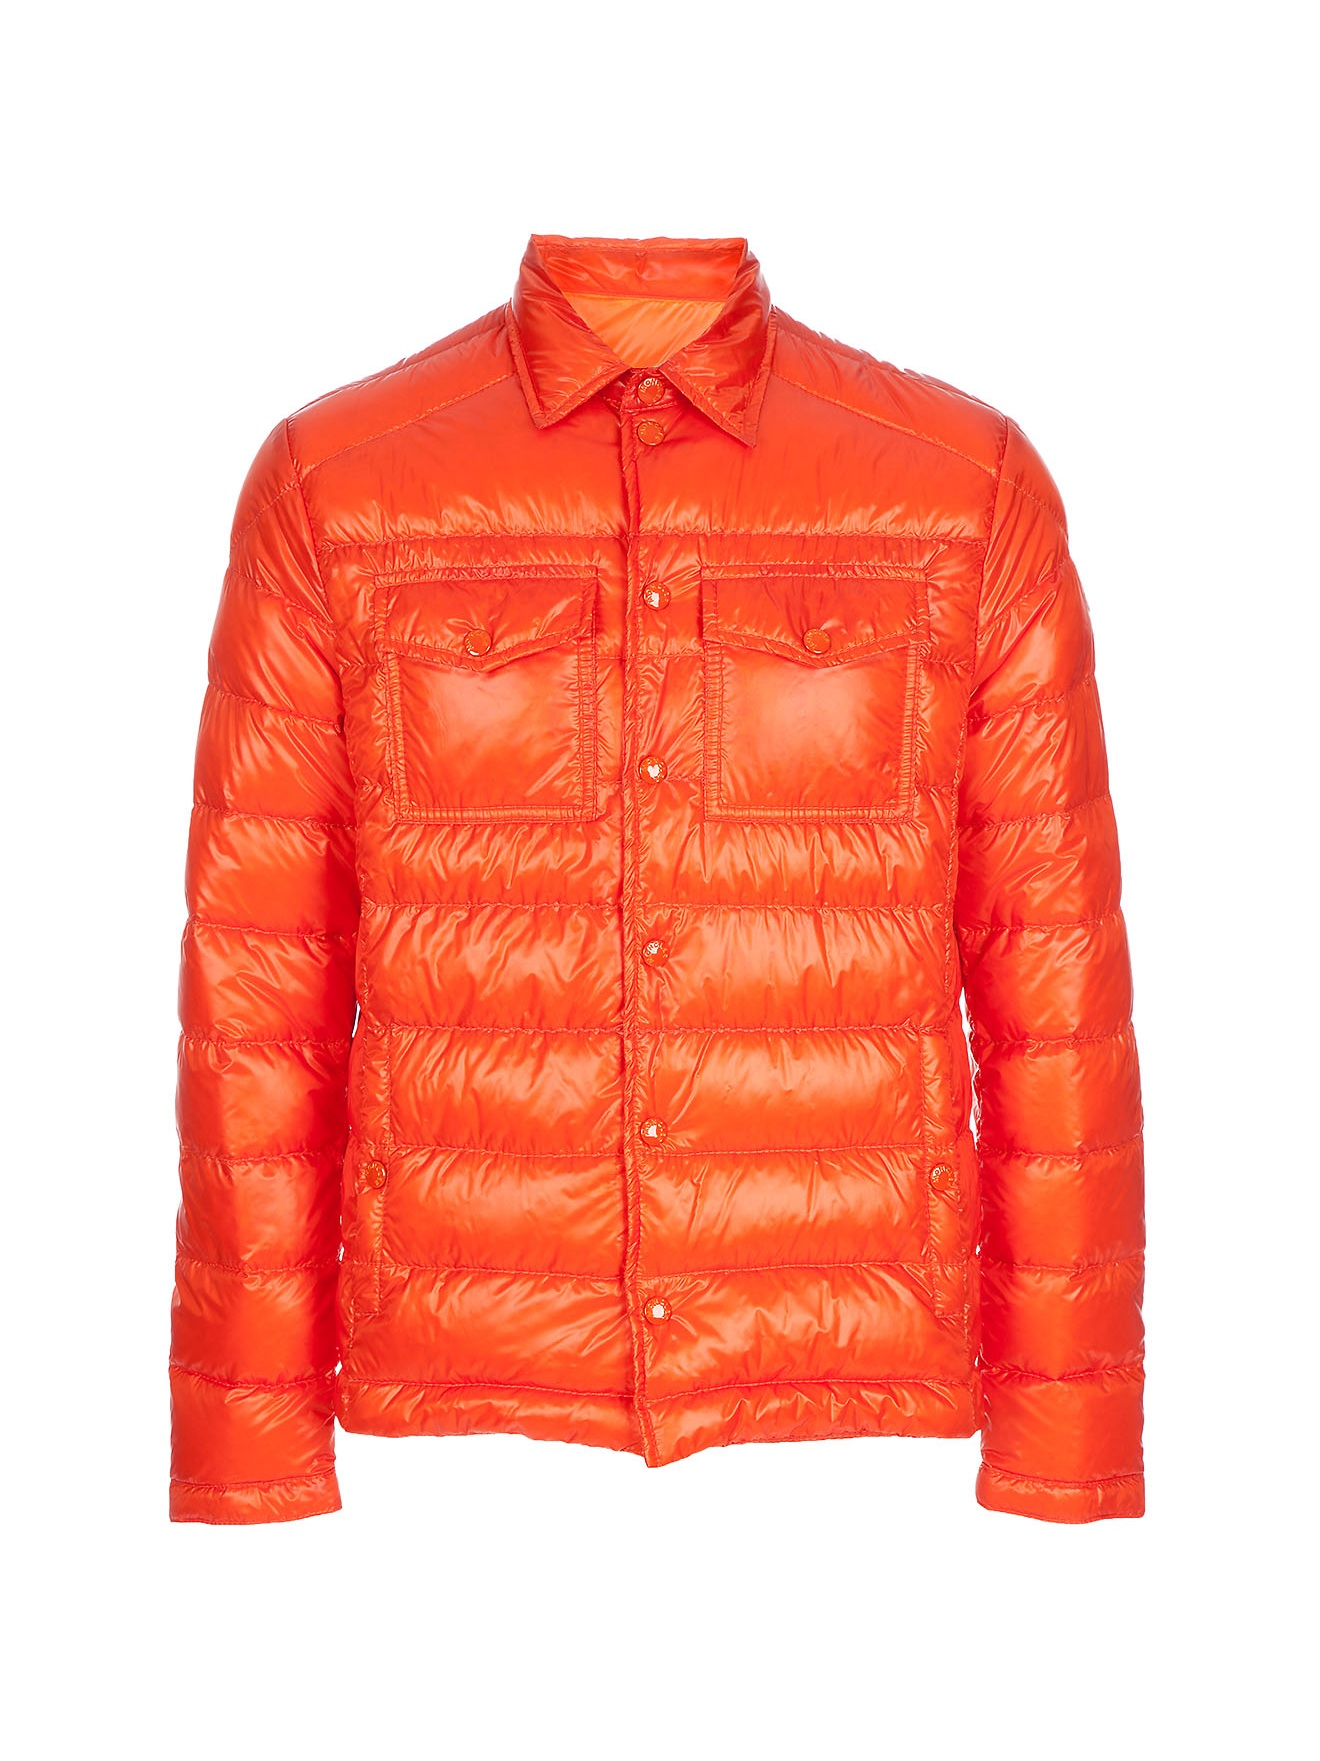 Moncler Gregoire Jacket In Orange For Men Lyst